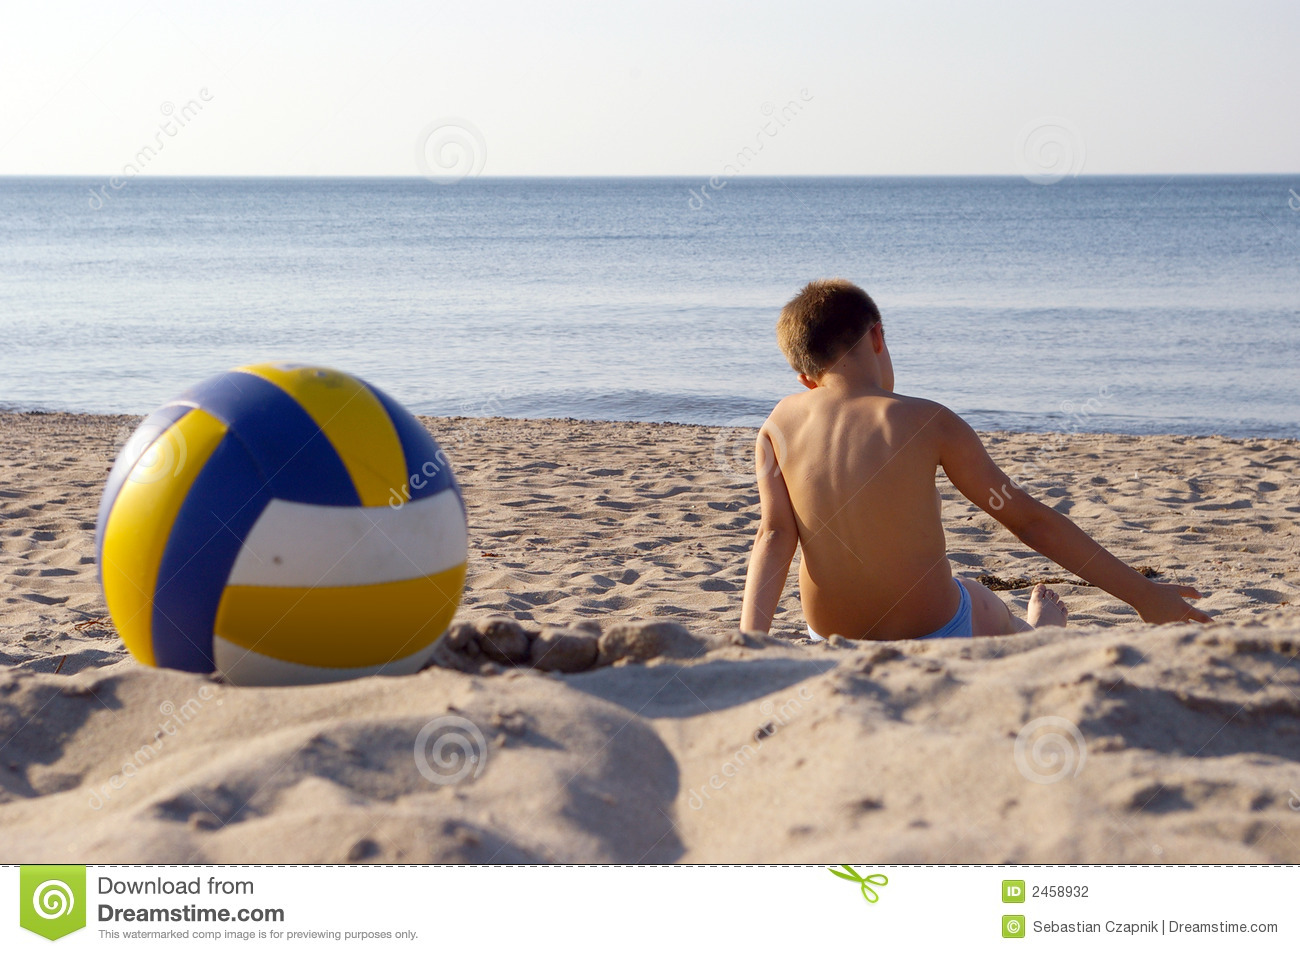 Boy with volleyball on beach.